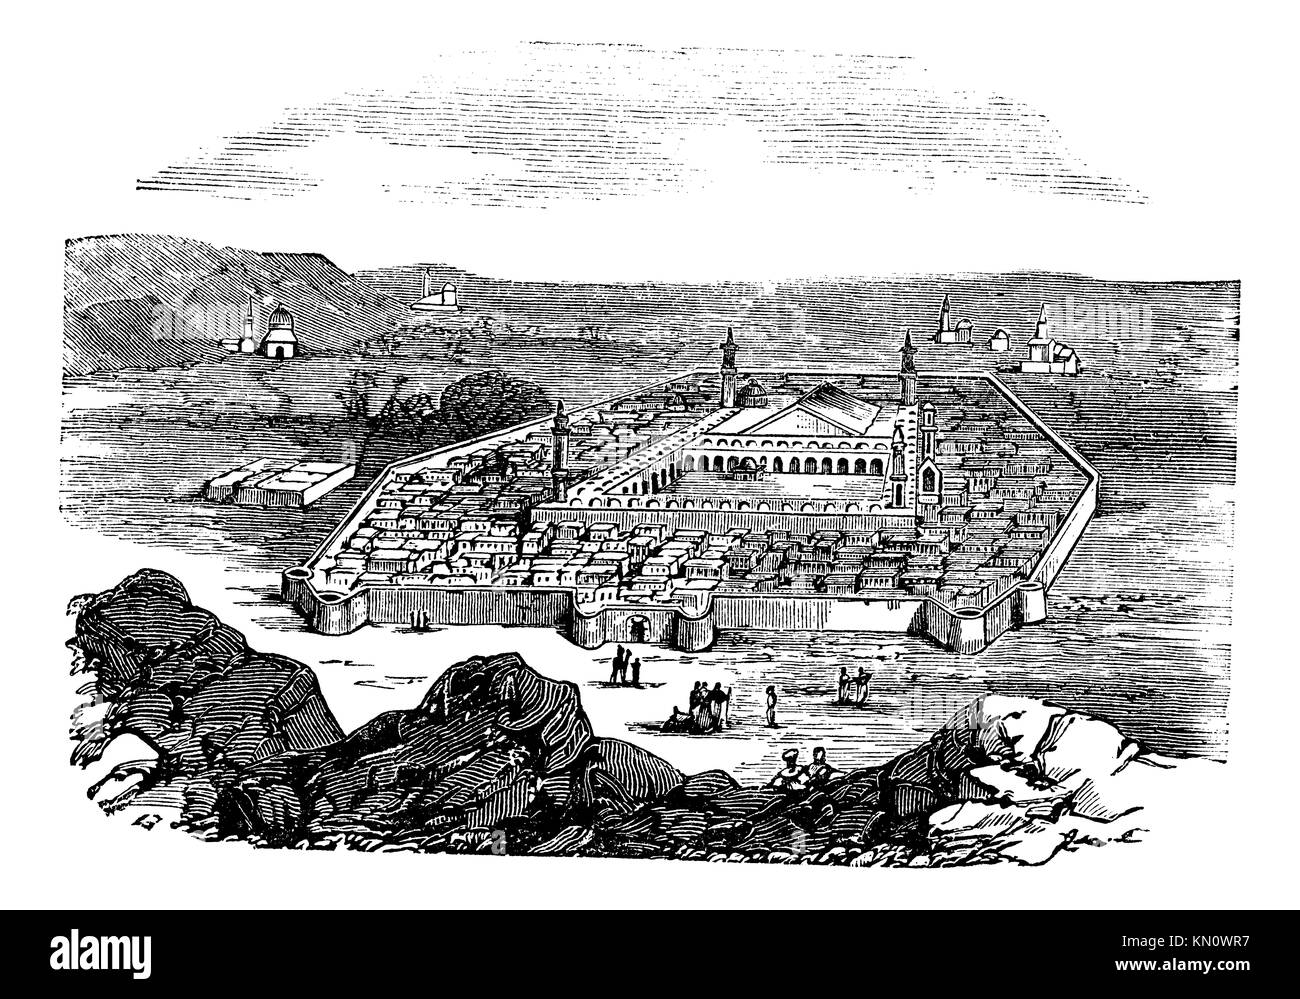 Medina, Saudi Arabia, vintage engraved illustration  Holy city and burial place of Islamic Prophet Muhammad,Trousset - Stock Image